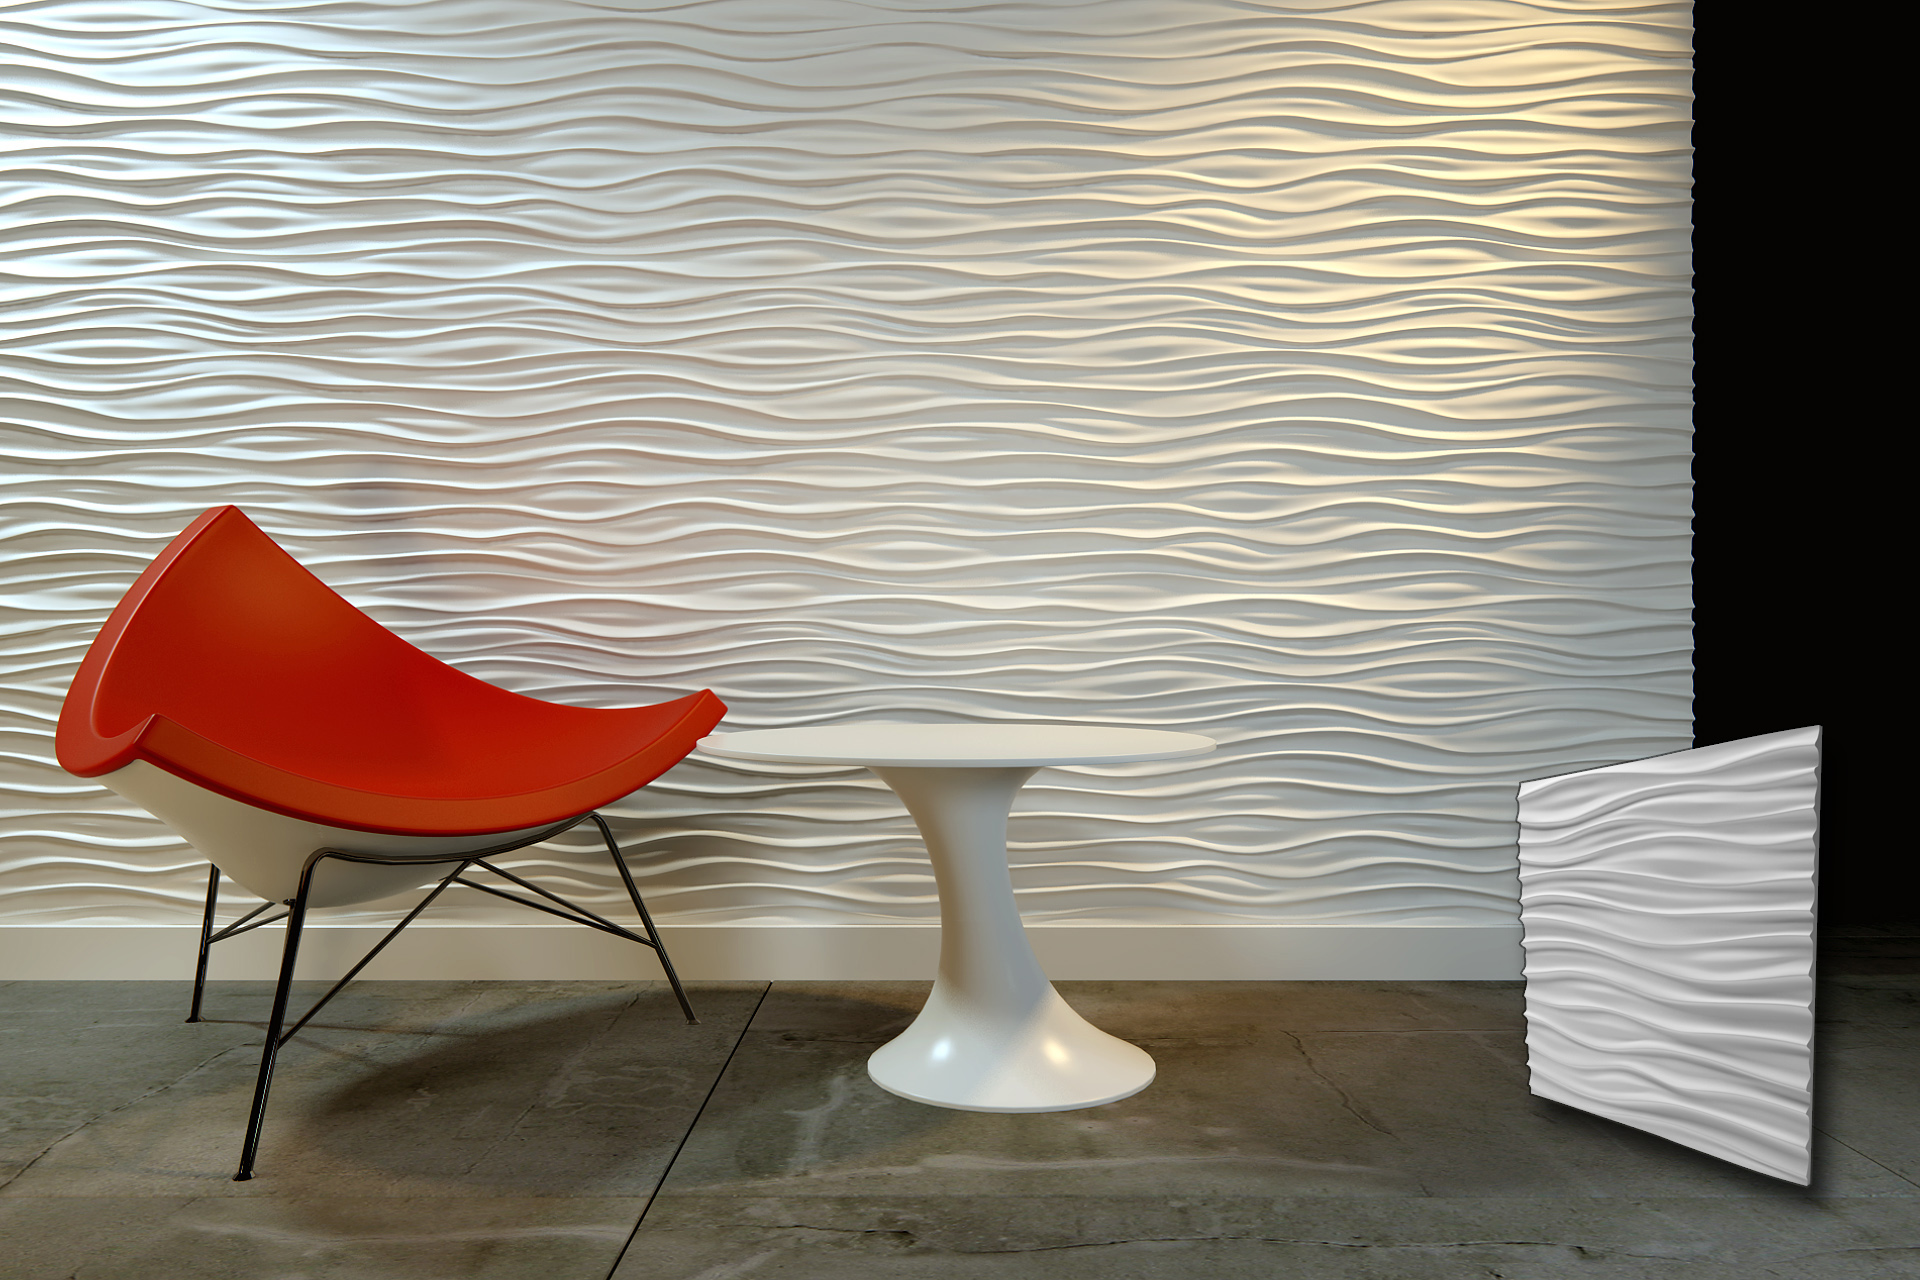 What are dimensions of 3D Tiles panels?